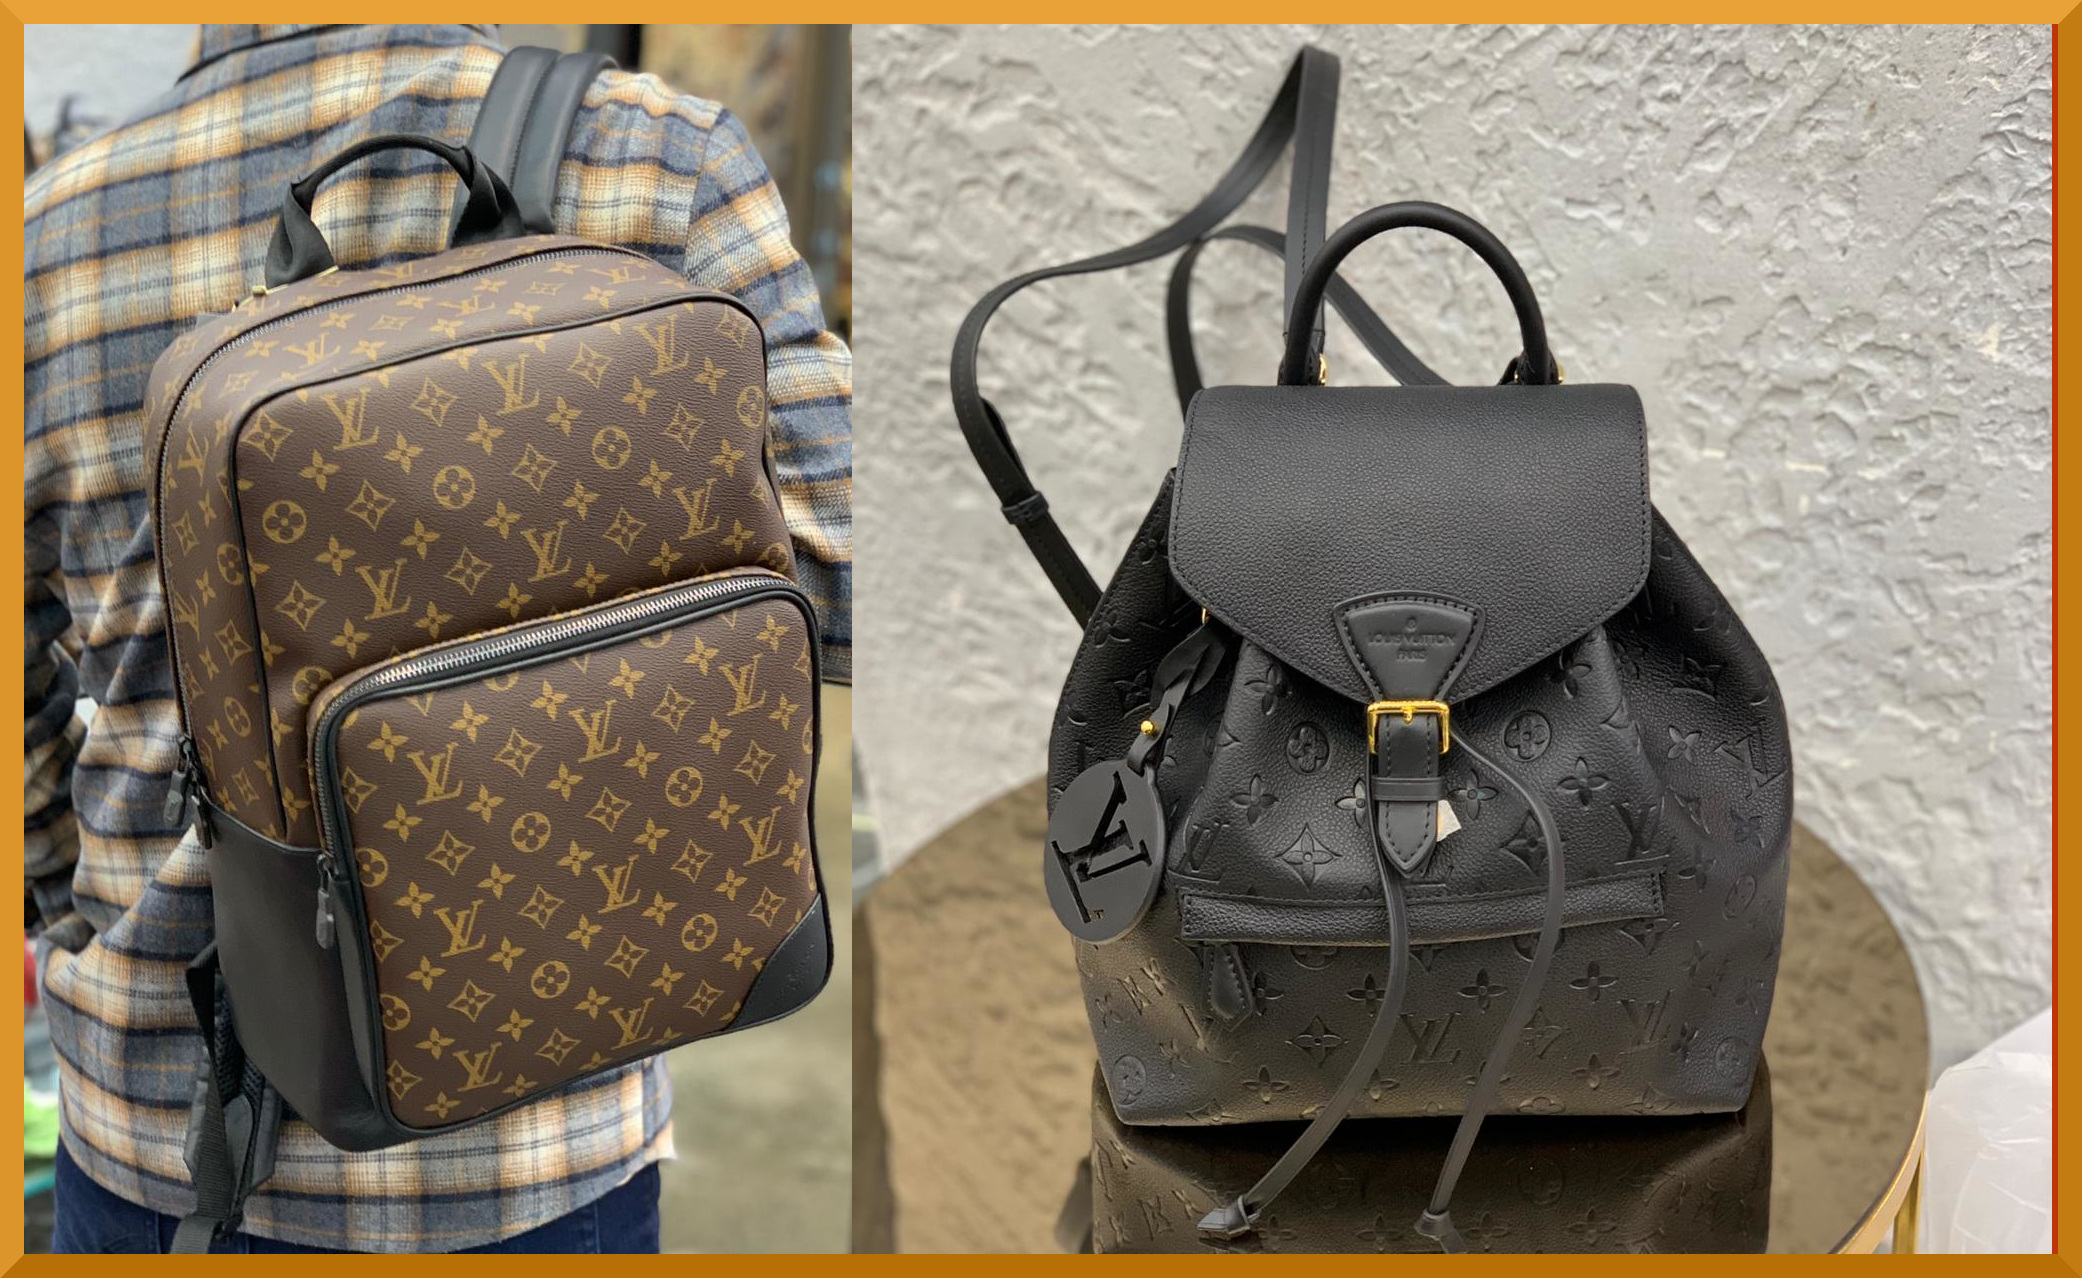 Backpacks that are so well done, a minimalist approach to Louis Vuitton.